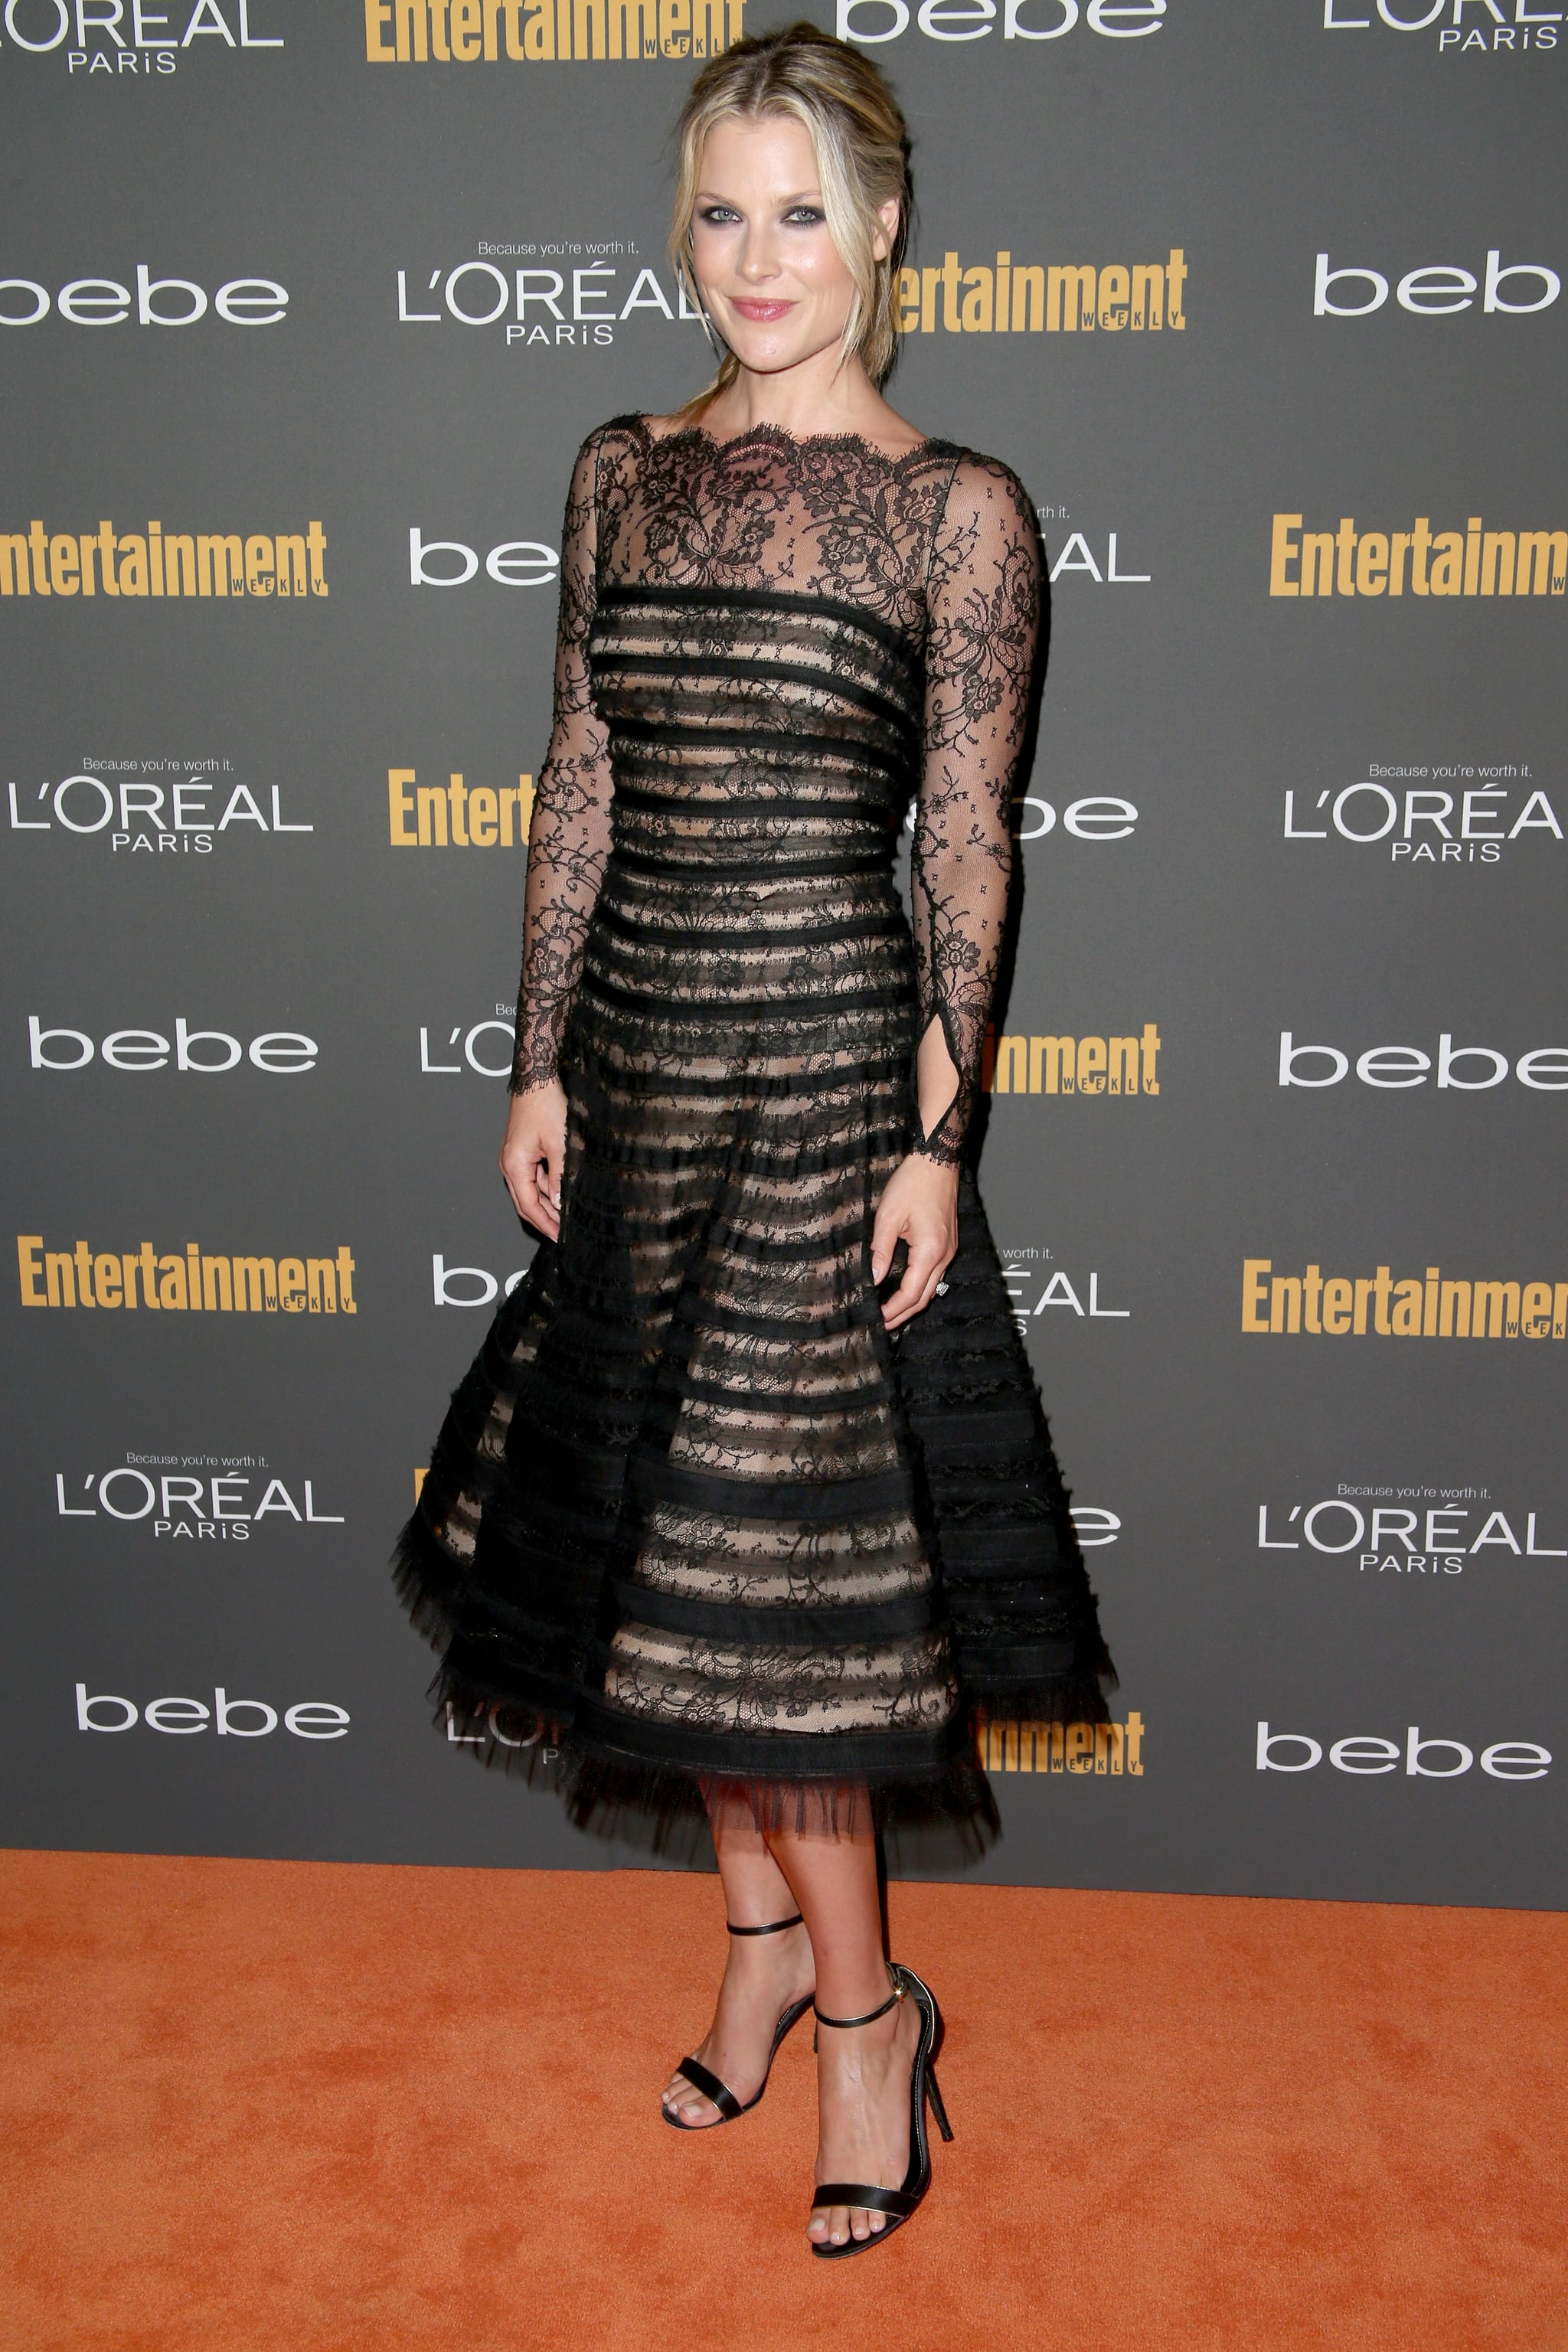 Ali Larter's black striped, lace fit-and-flare dress stood out for being ladylike on the Entertainment Weekly pre-Emmys party red carpet.